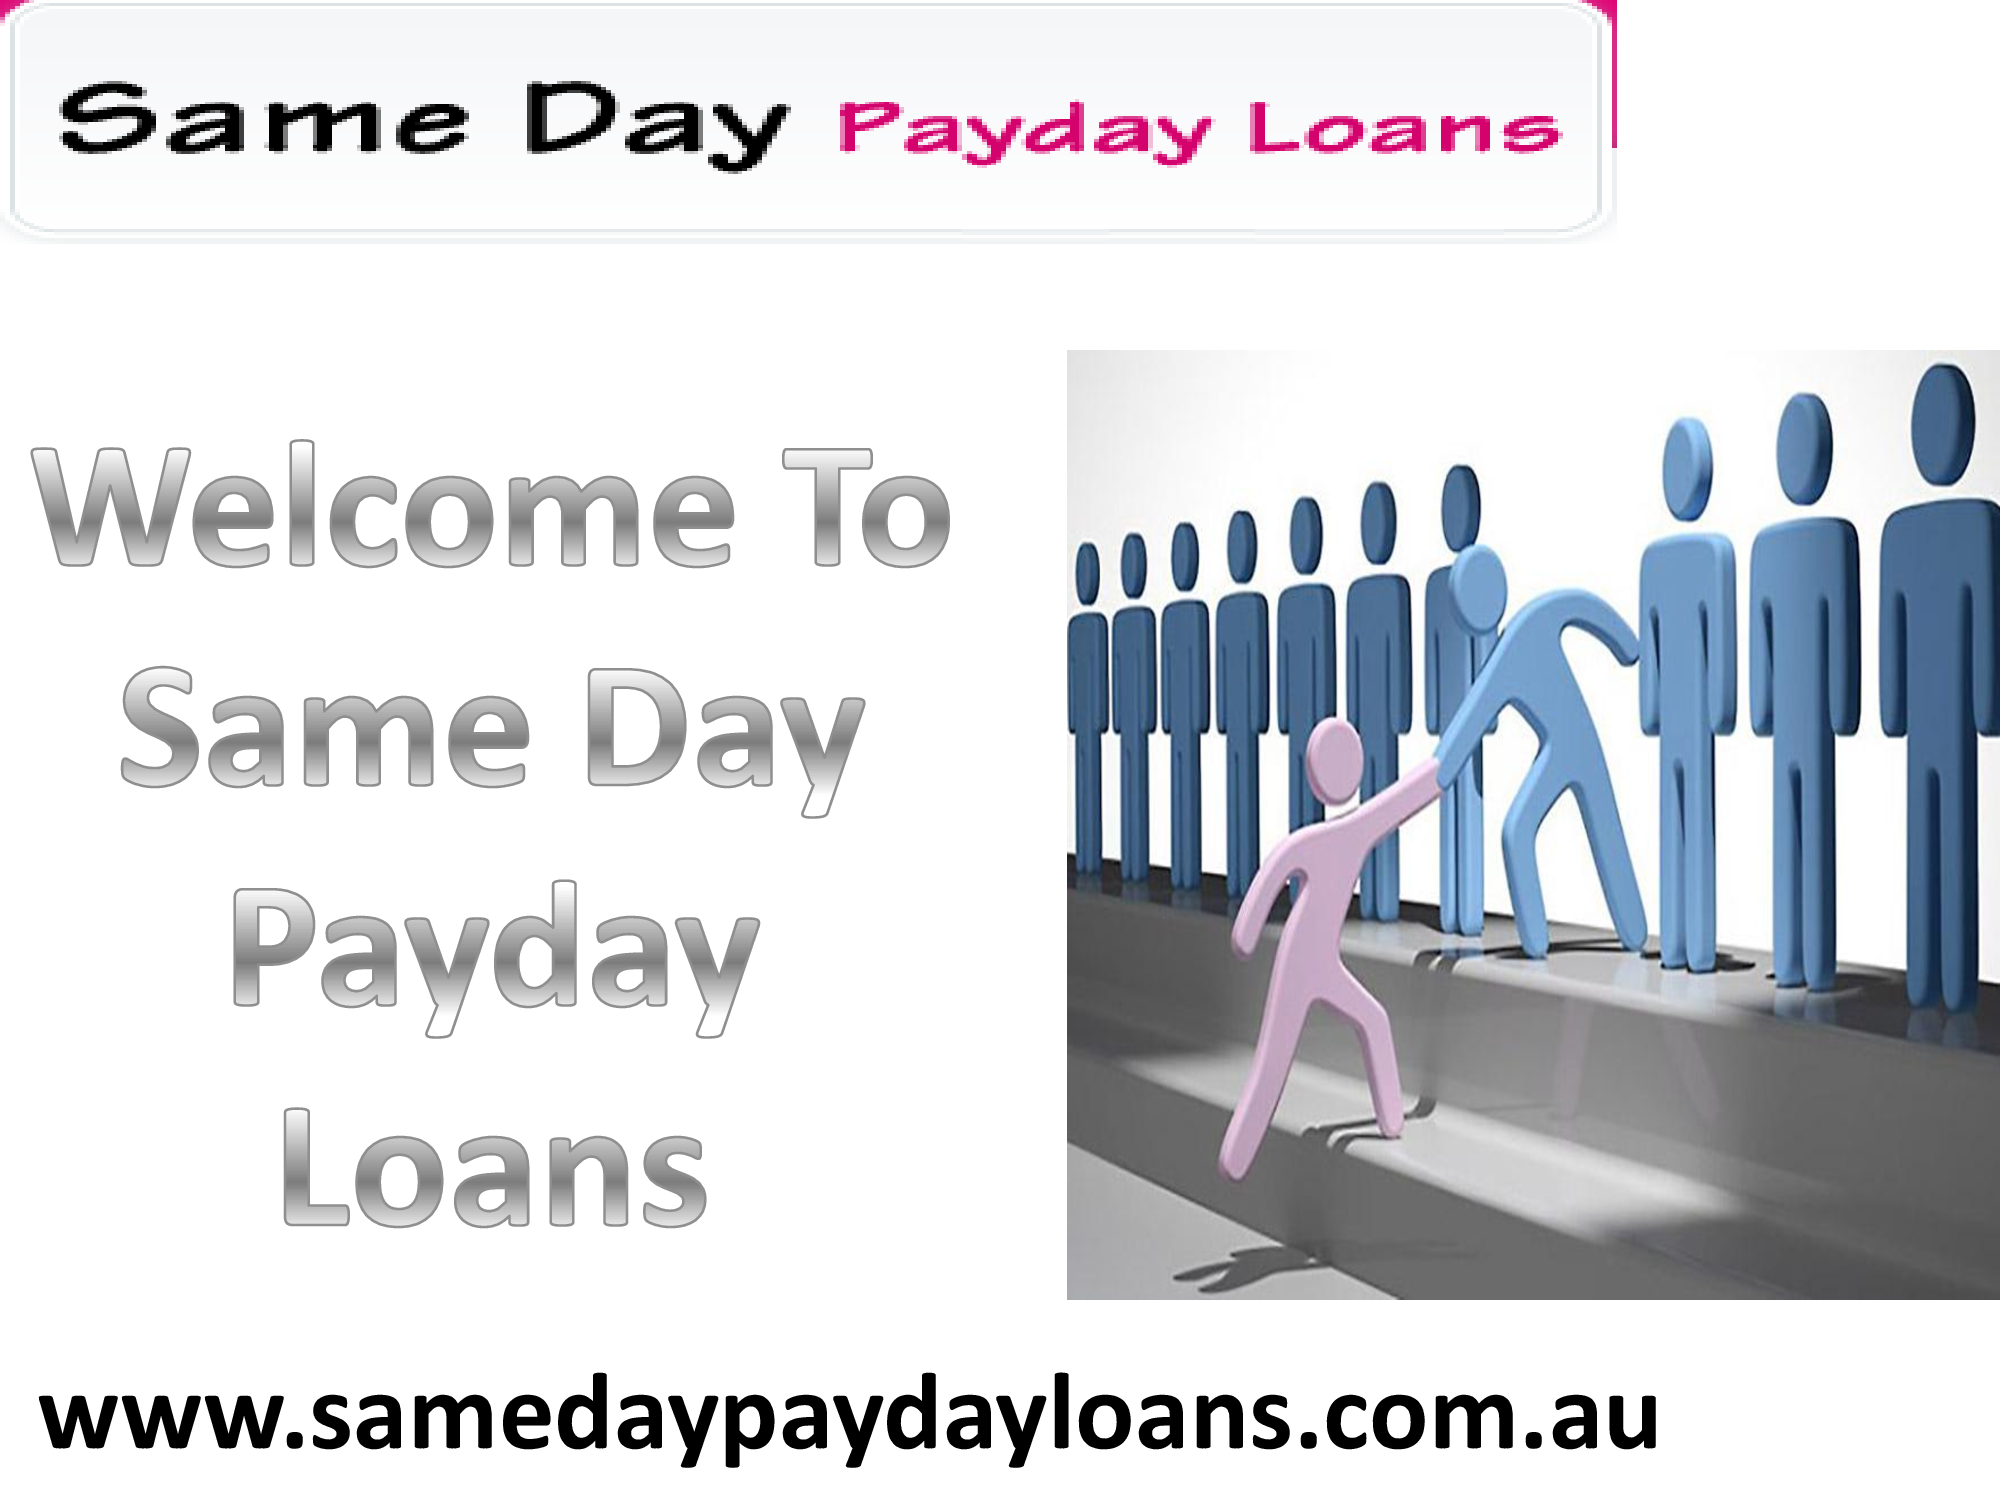 Fastest payday loans online image 6